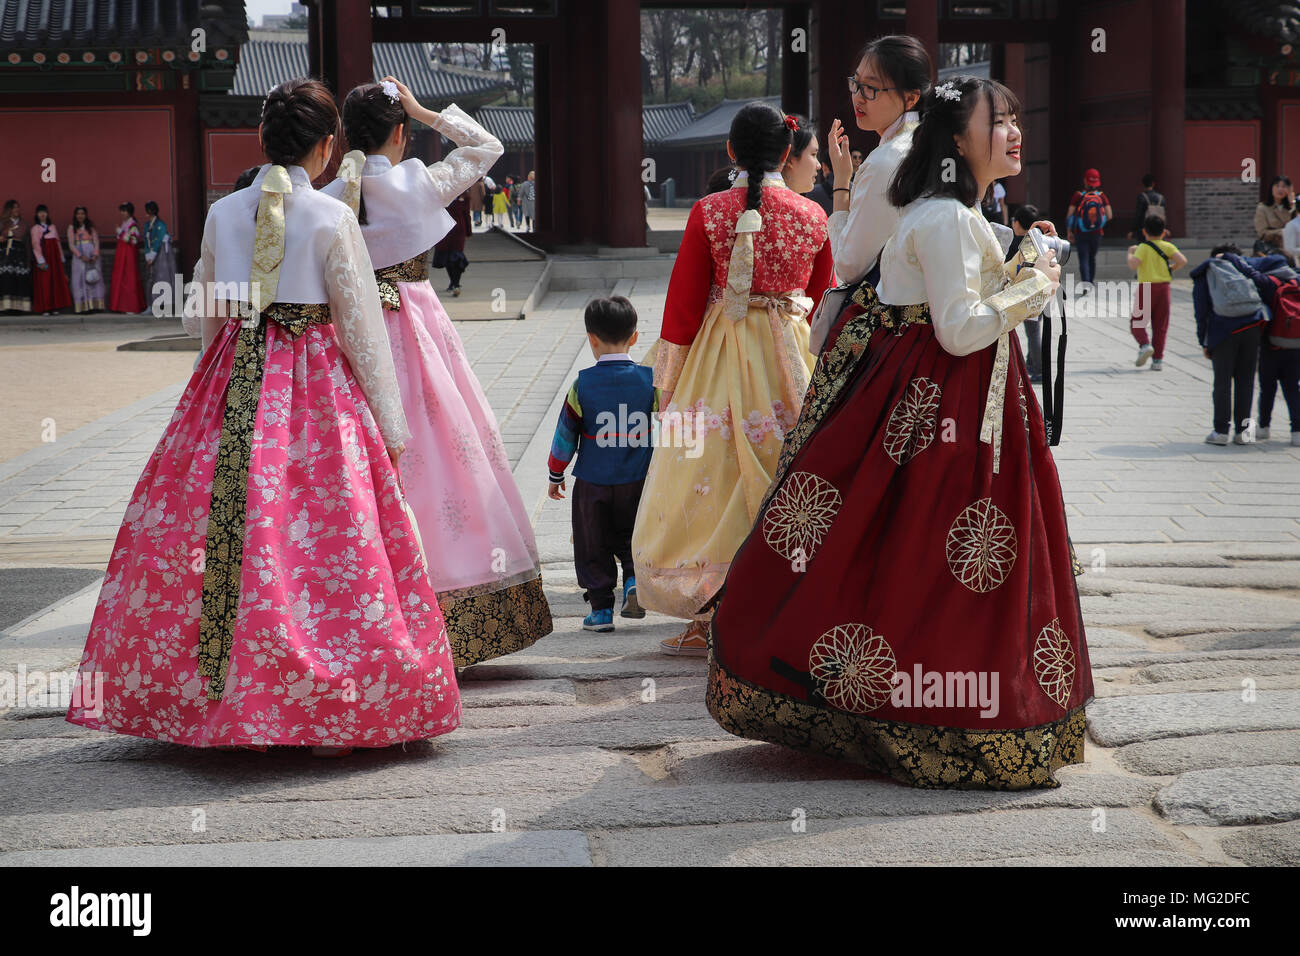 Group of several Korean teen girls (+ 1 boy) dressed in colorful traditional fullskirted hanboks visit the Changdeokgung Palace in Seoul,South Korea. - Stock Image